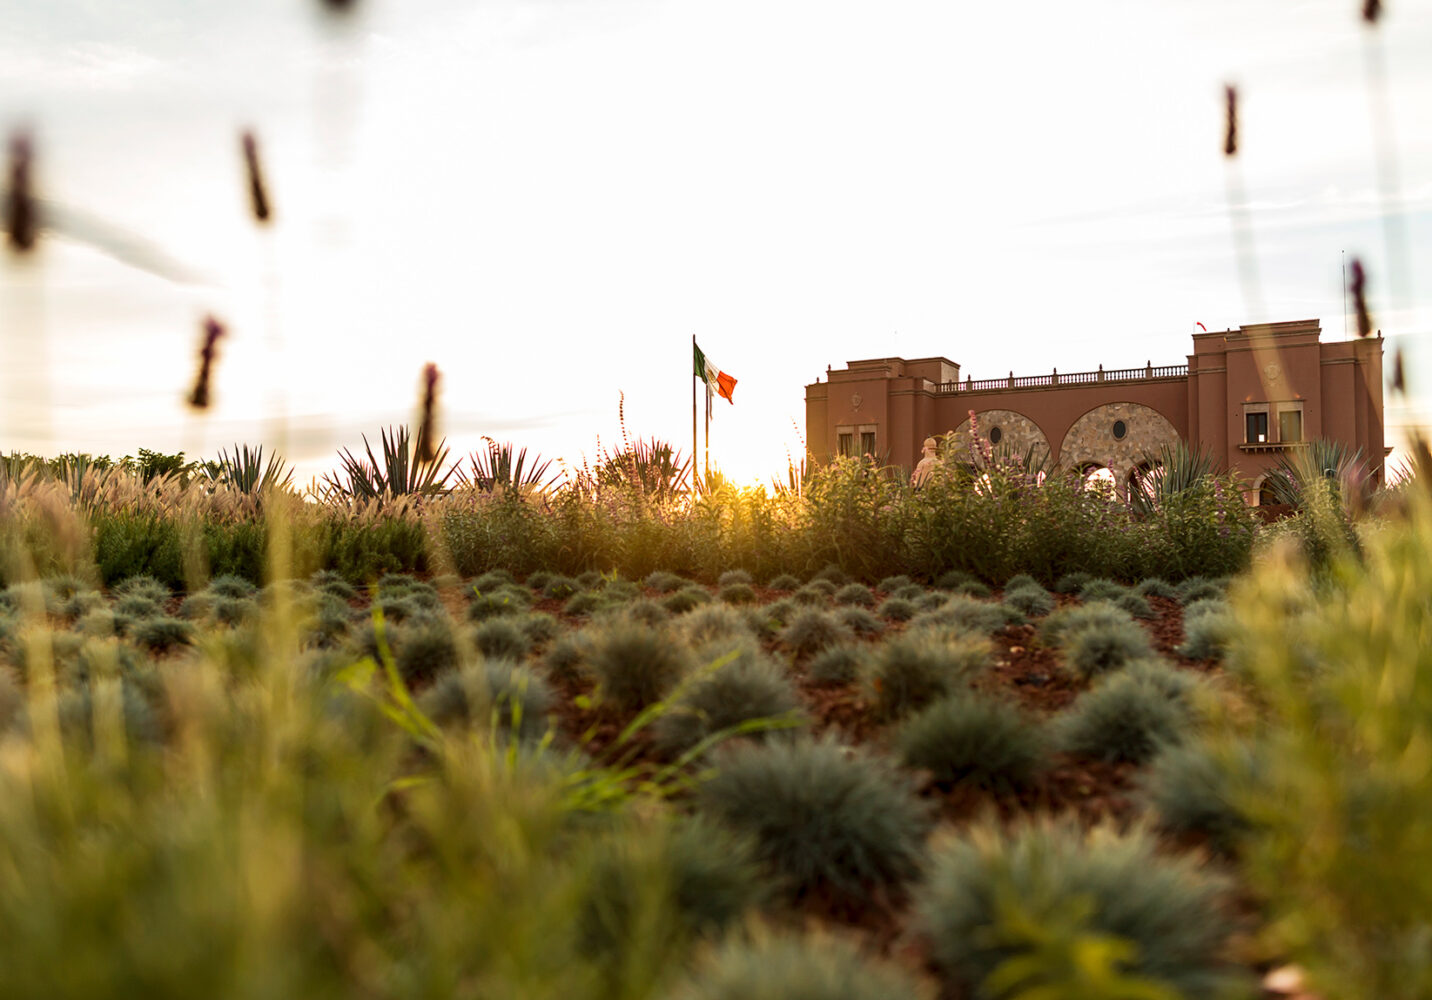 """DESC: PROJECT: IMAGE LIBRARY for HACIENDA PATRON + LA CASONA. Location: Hacienda Patron, Jalisco Mexico DATE: Feb 13-16, 2017© 2017 Vincent L Long. The photographer (Vincent Long) grants world wide usage rights to """"Patrón Spirits International AG"""" for publicity and promotion of Patrón Spirits International ONLY The photographer is the sole author of all photographs as such retains copyright. Usage Rights subject to FULL payment of relevant invoice(s) MANDATORY ACCCREDITION MUST READ: © Vincent L Long"""